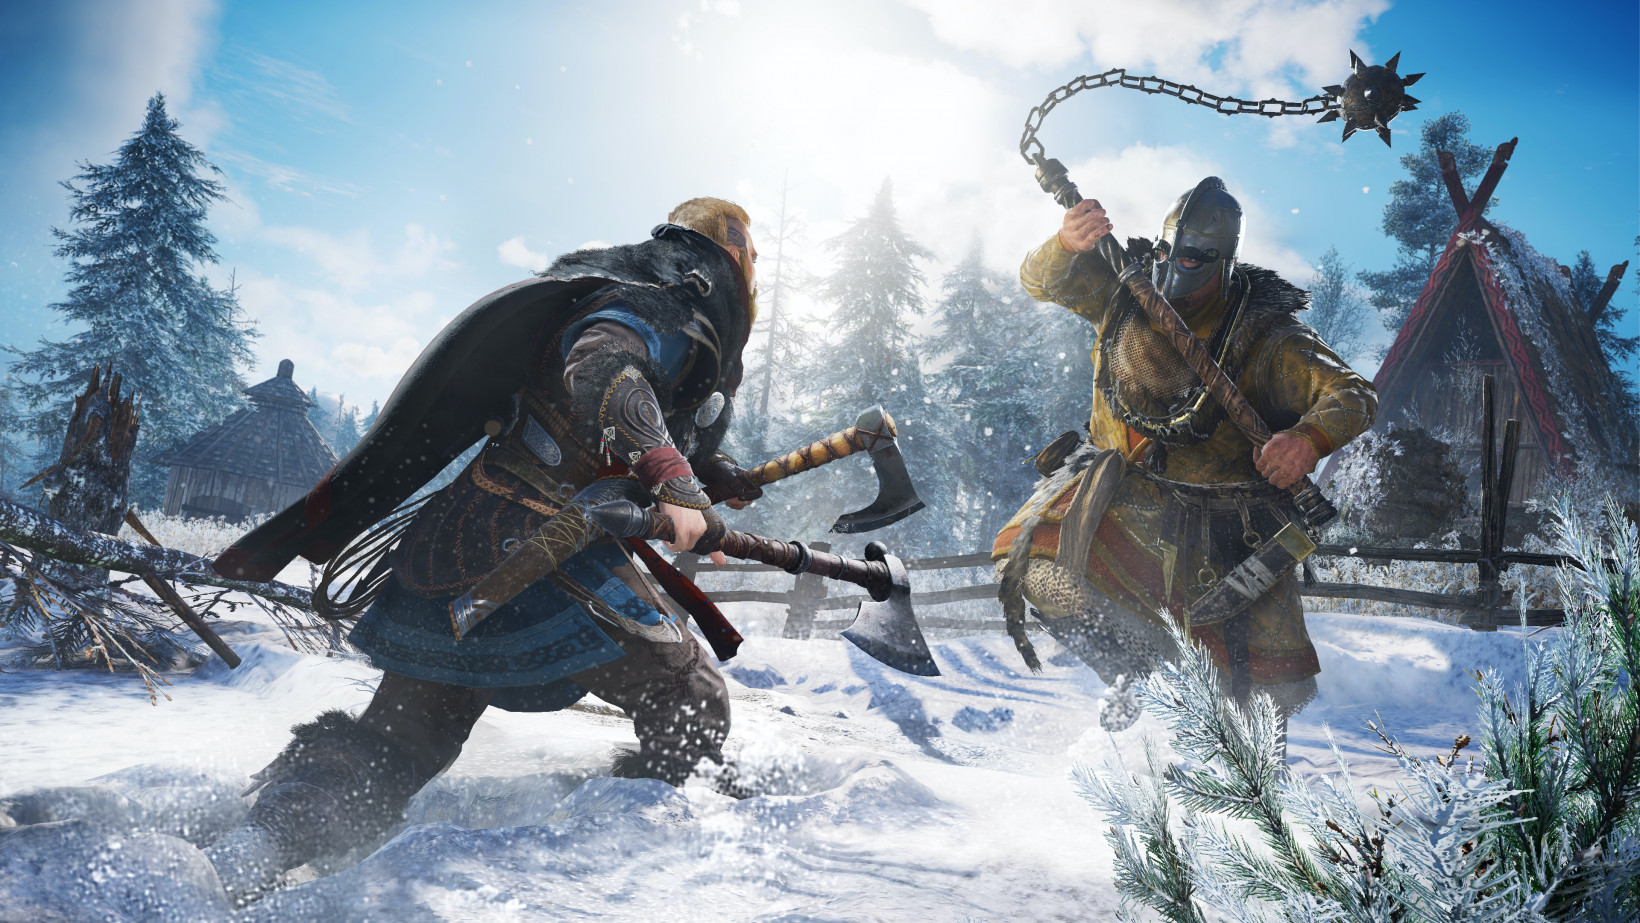 The PlayStation 5 launch games reviewed 8